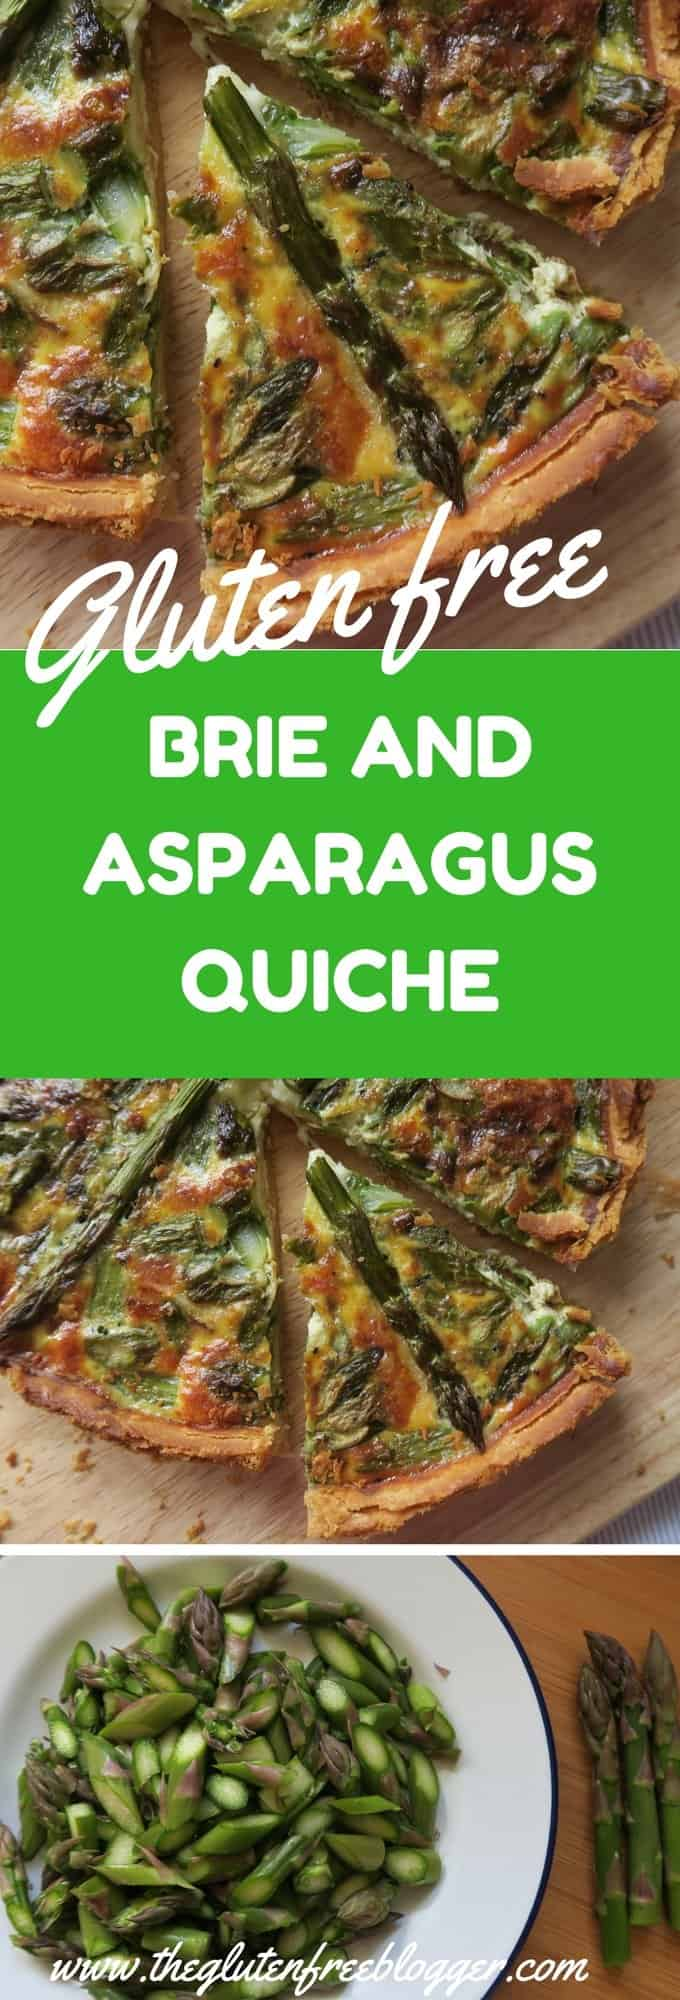 ... asparagus quiche is perfect gluten free picnic food - The Gluten Free